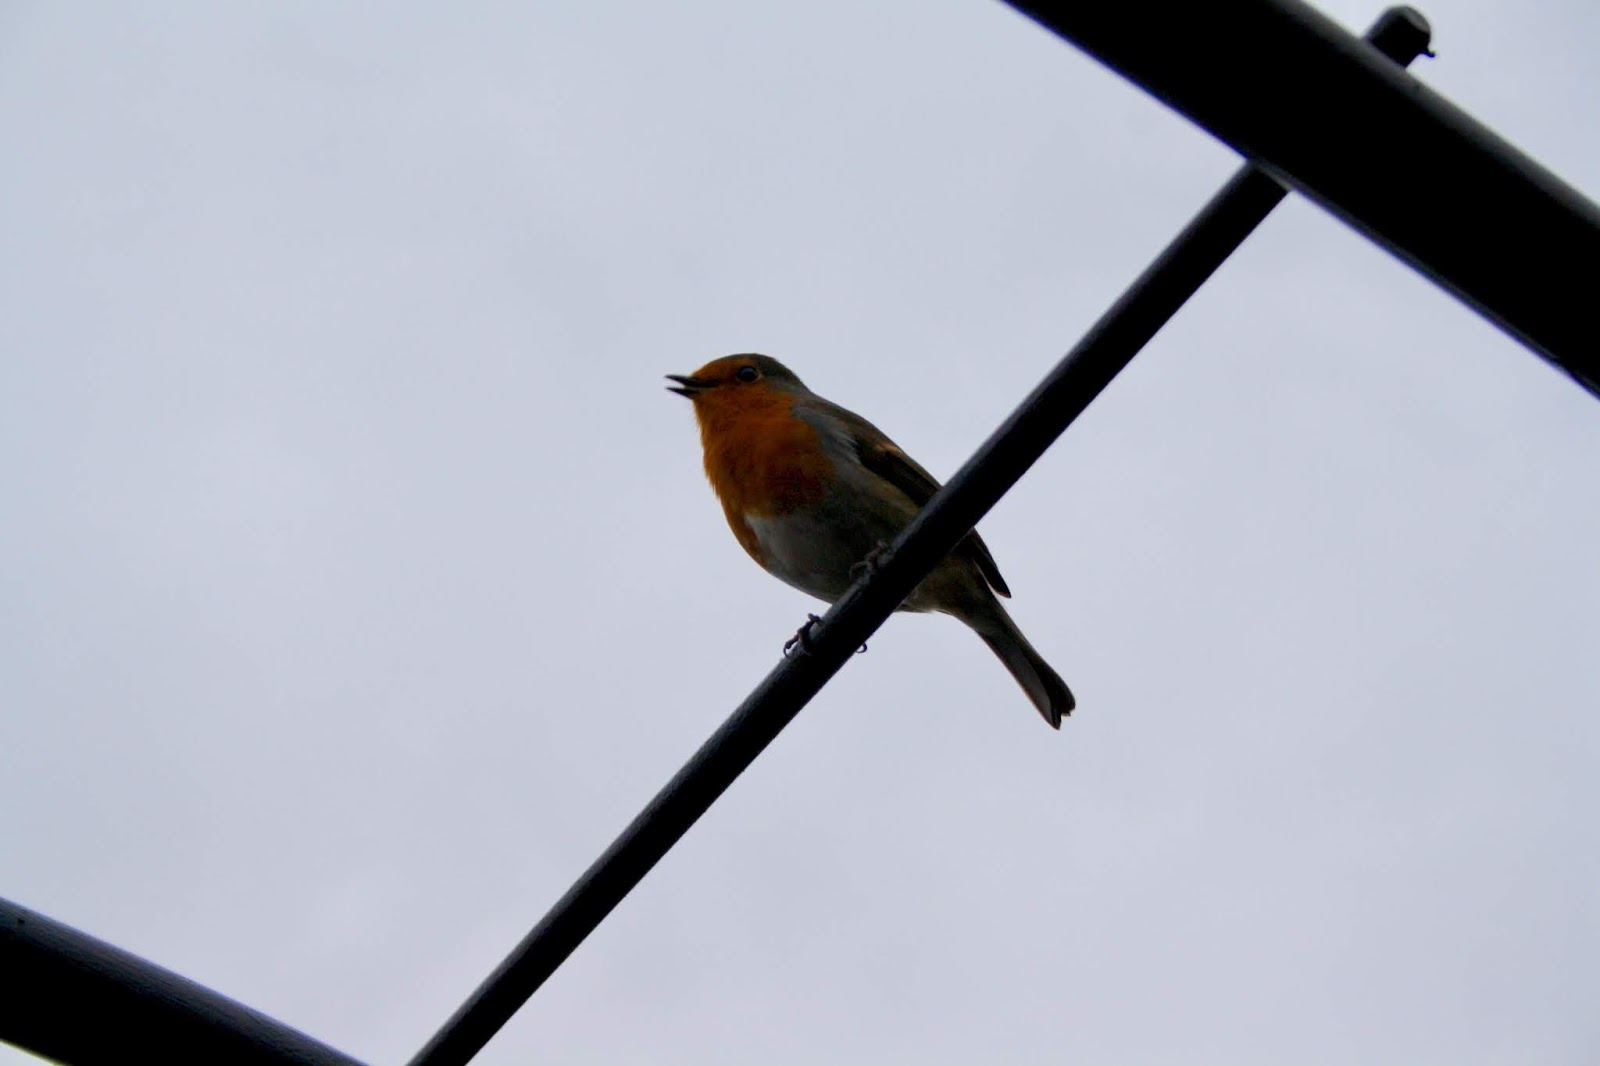 nature robin Northern Ireland Hillsborough Castle gardens